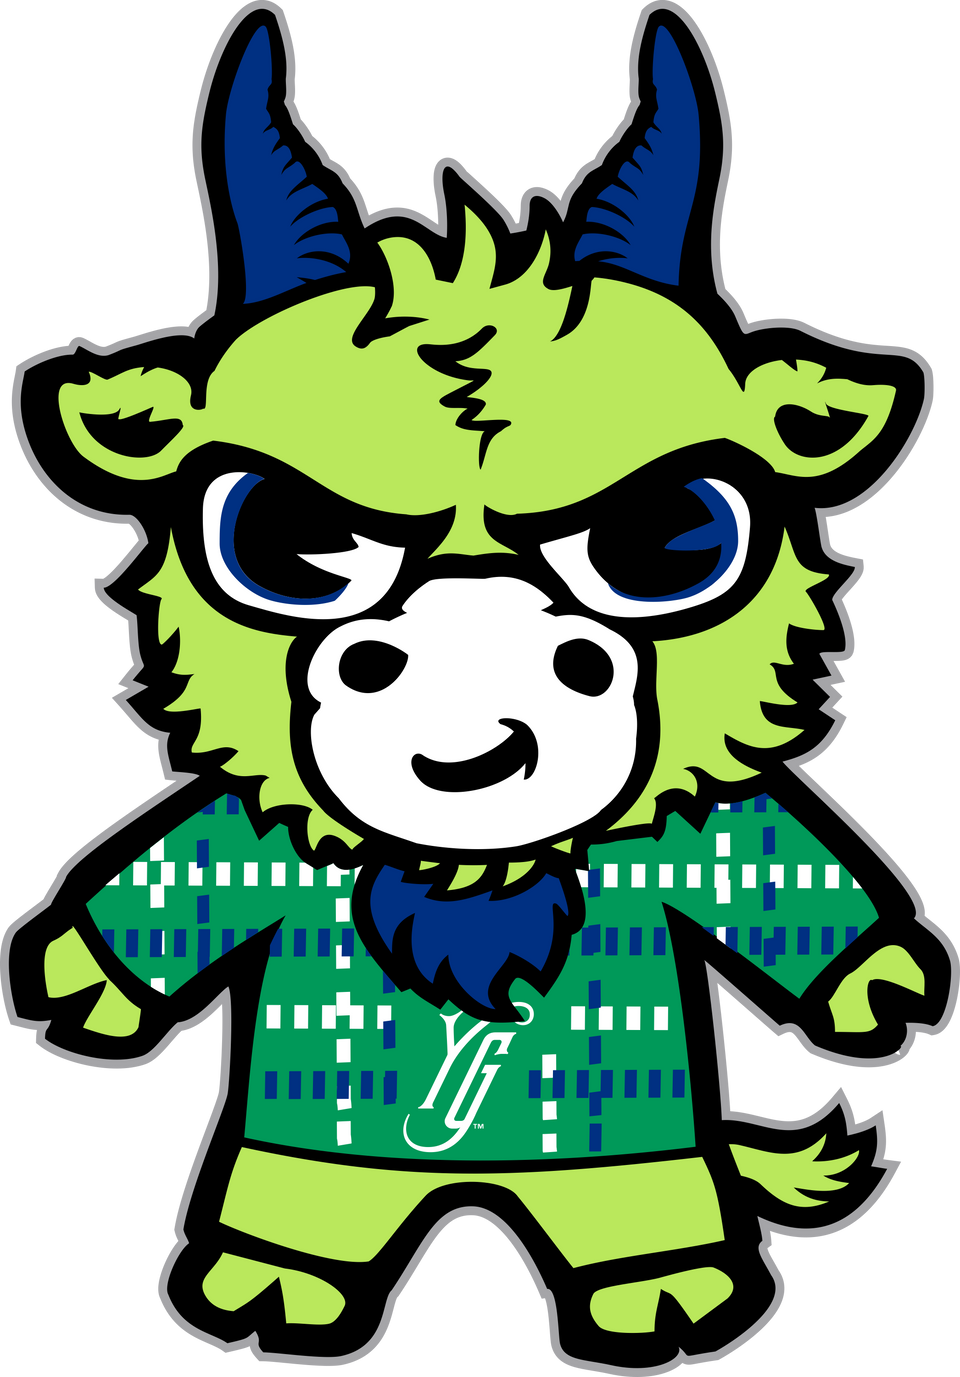 collections/Hartford_Yardgoats.png